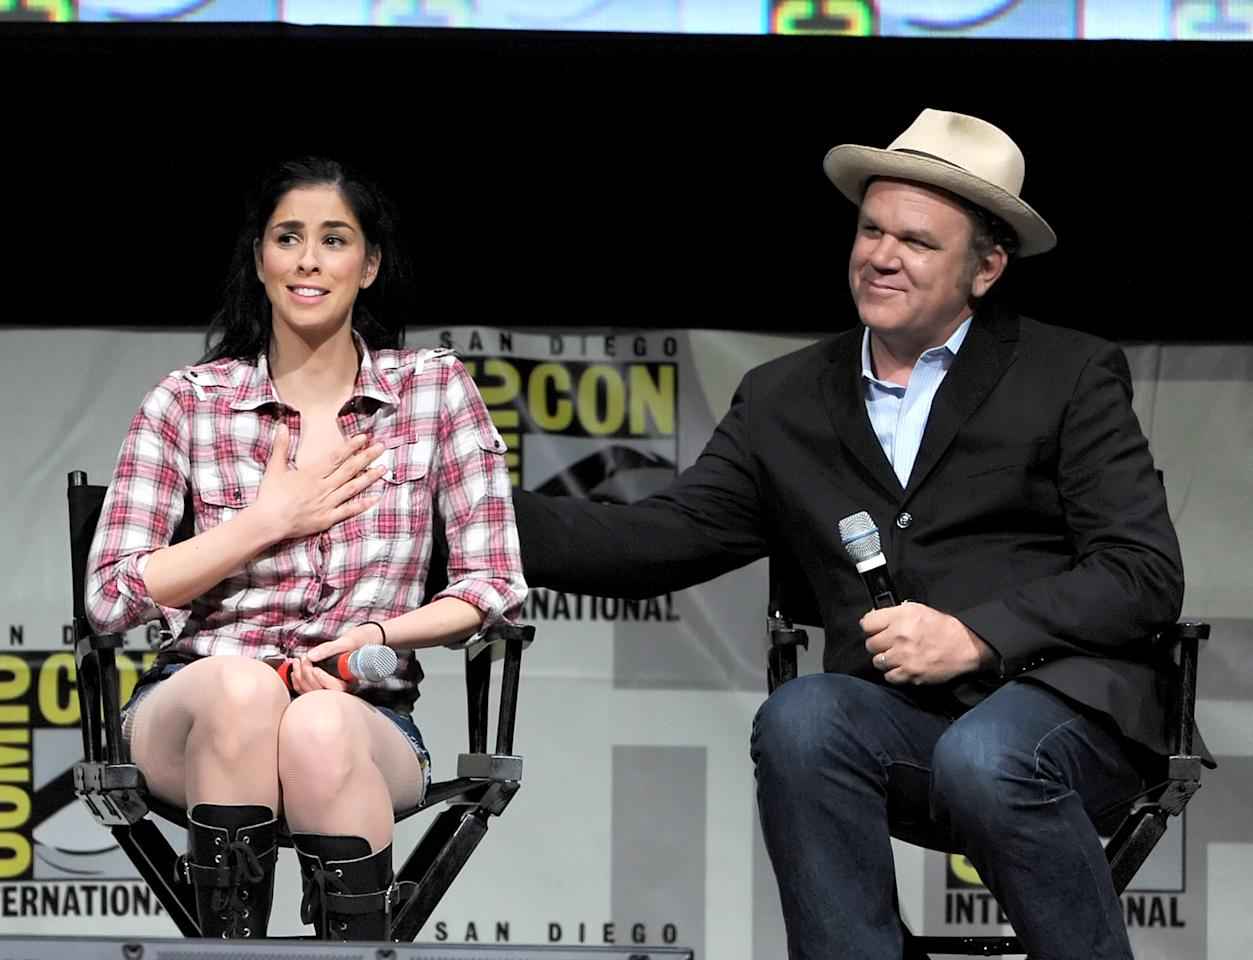 """SAN DIEGO, CA - JULY 12:  Actress Sarah Silverman (L) and actor John C. Reilly speak at the """"Wreck-It Ralph"""" panel during Comic-Con International 2012 at San Diego Convention Center on July 12, 2012 in San Diego, California.  (Photo by Kevin Winter/Getty Images)"""